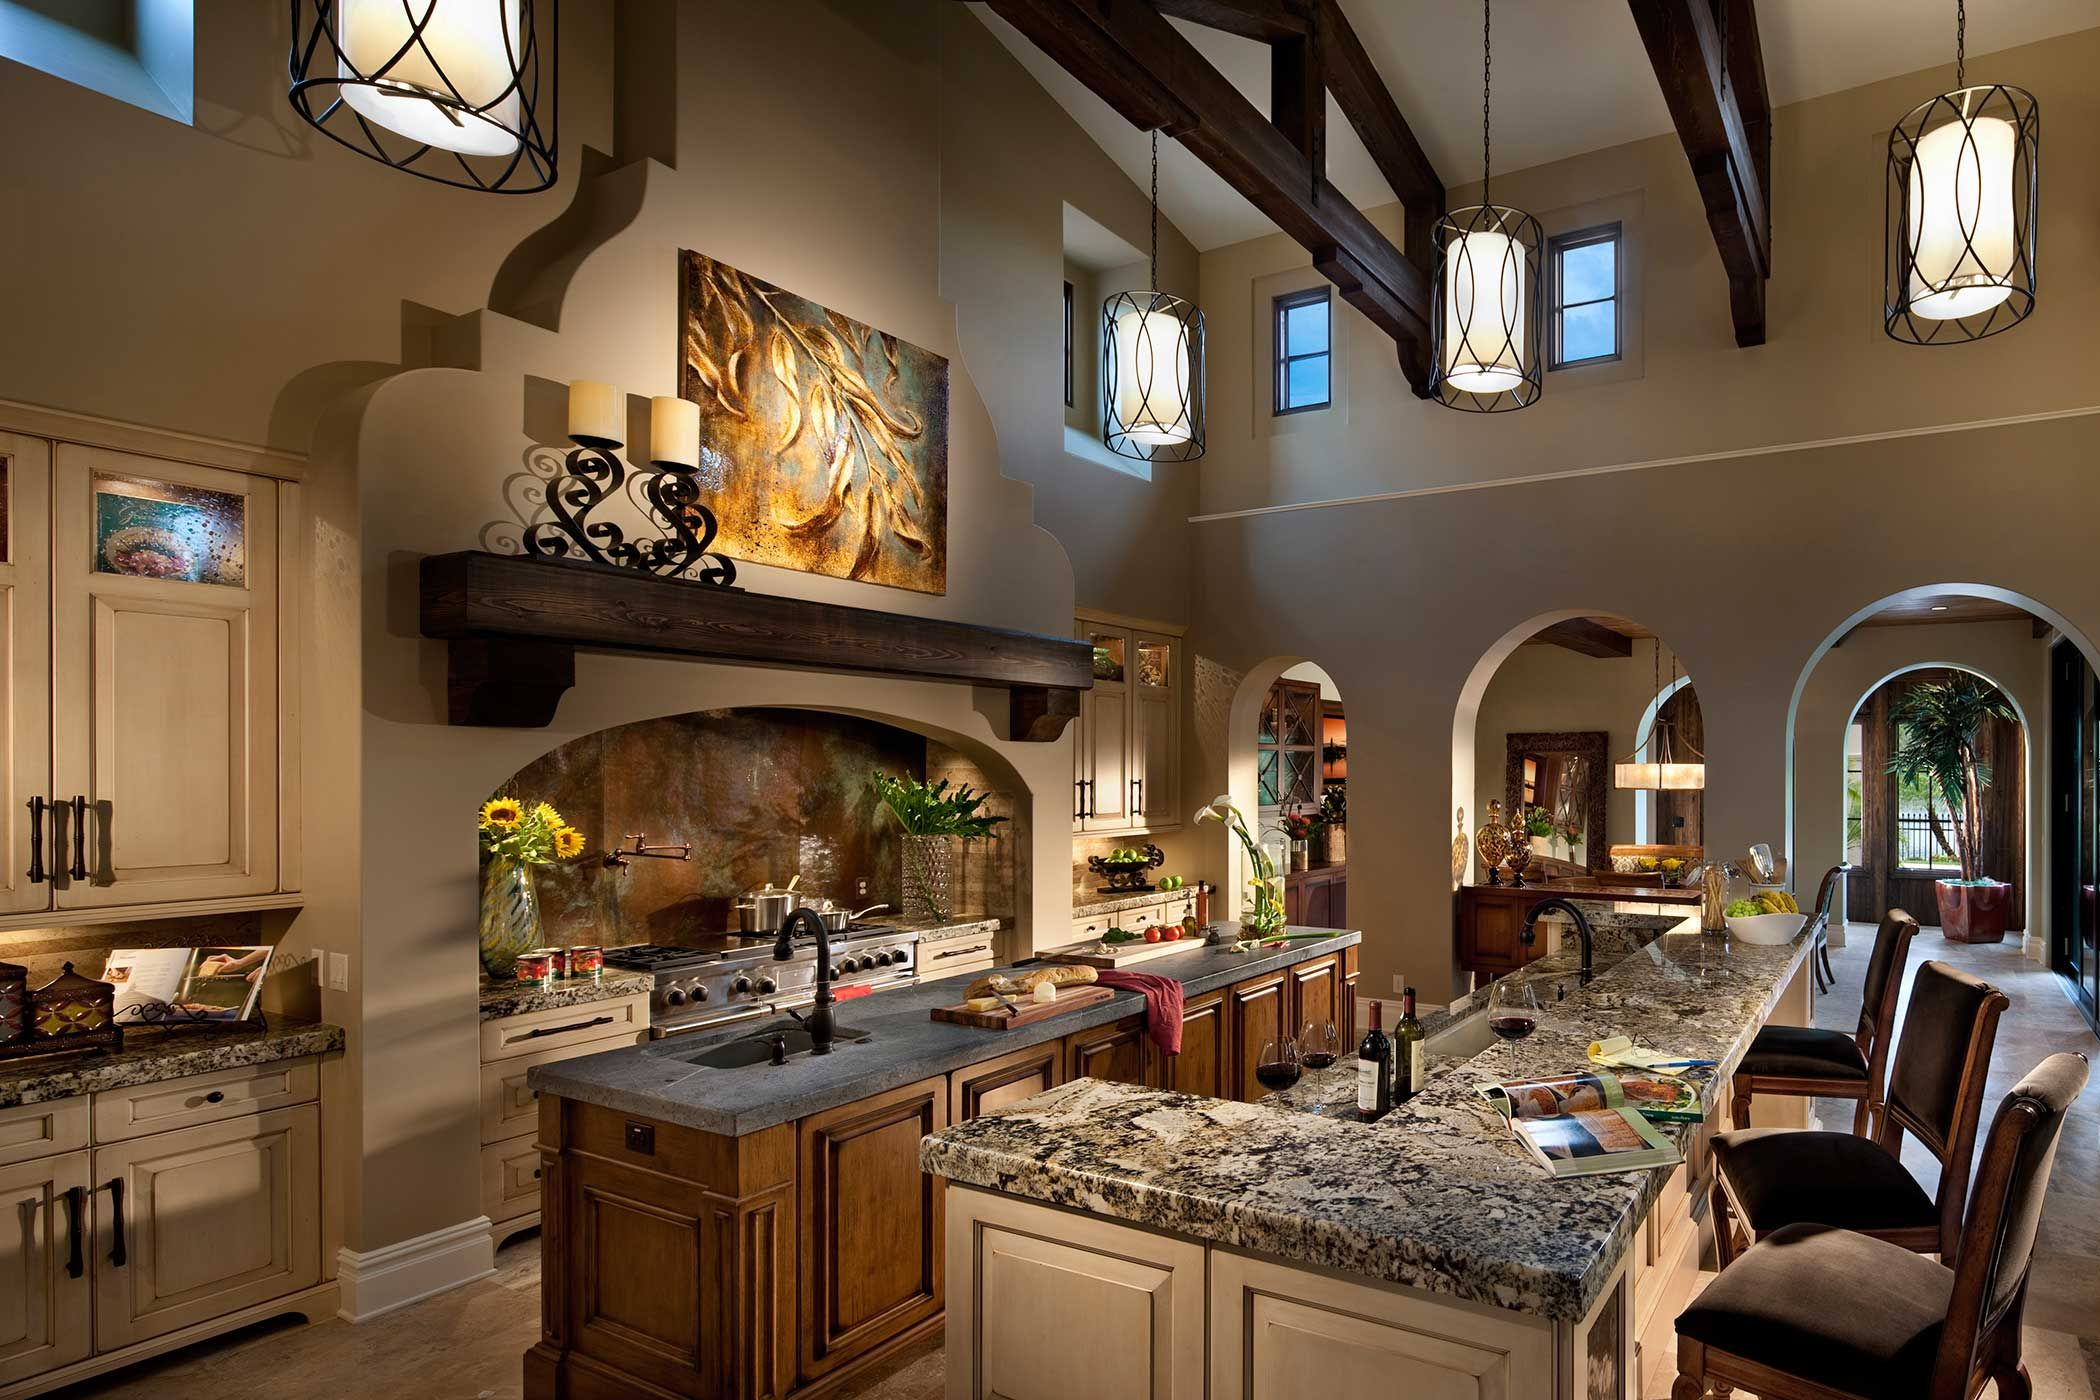 lovely Disney World Resorts With Kitchens #2: 1000+ images about Golden Oak at Walt Disney World® Resort on Pinterest | Gardens, Disney and Oak kitchens